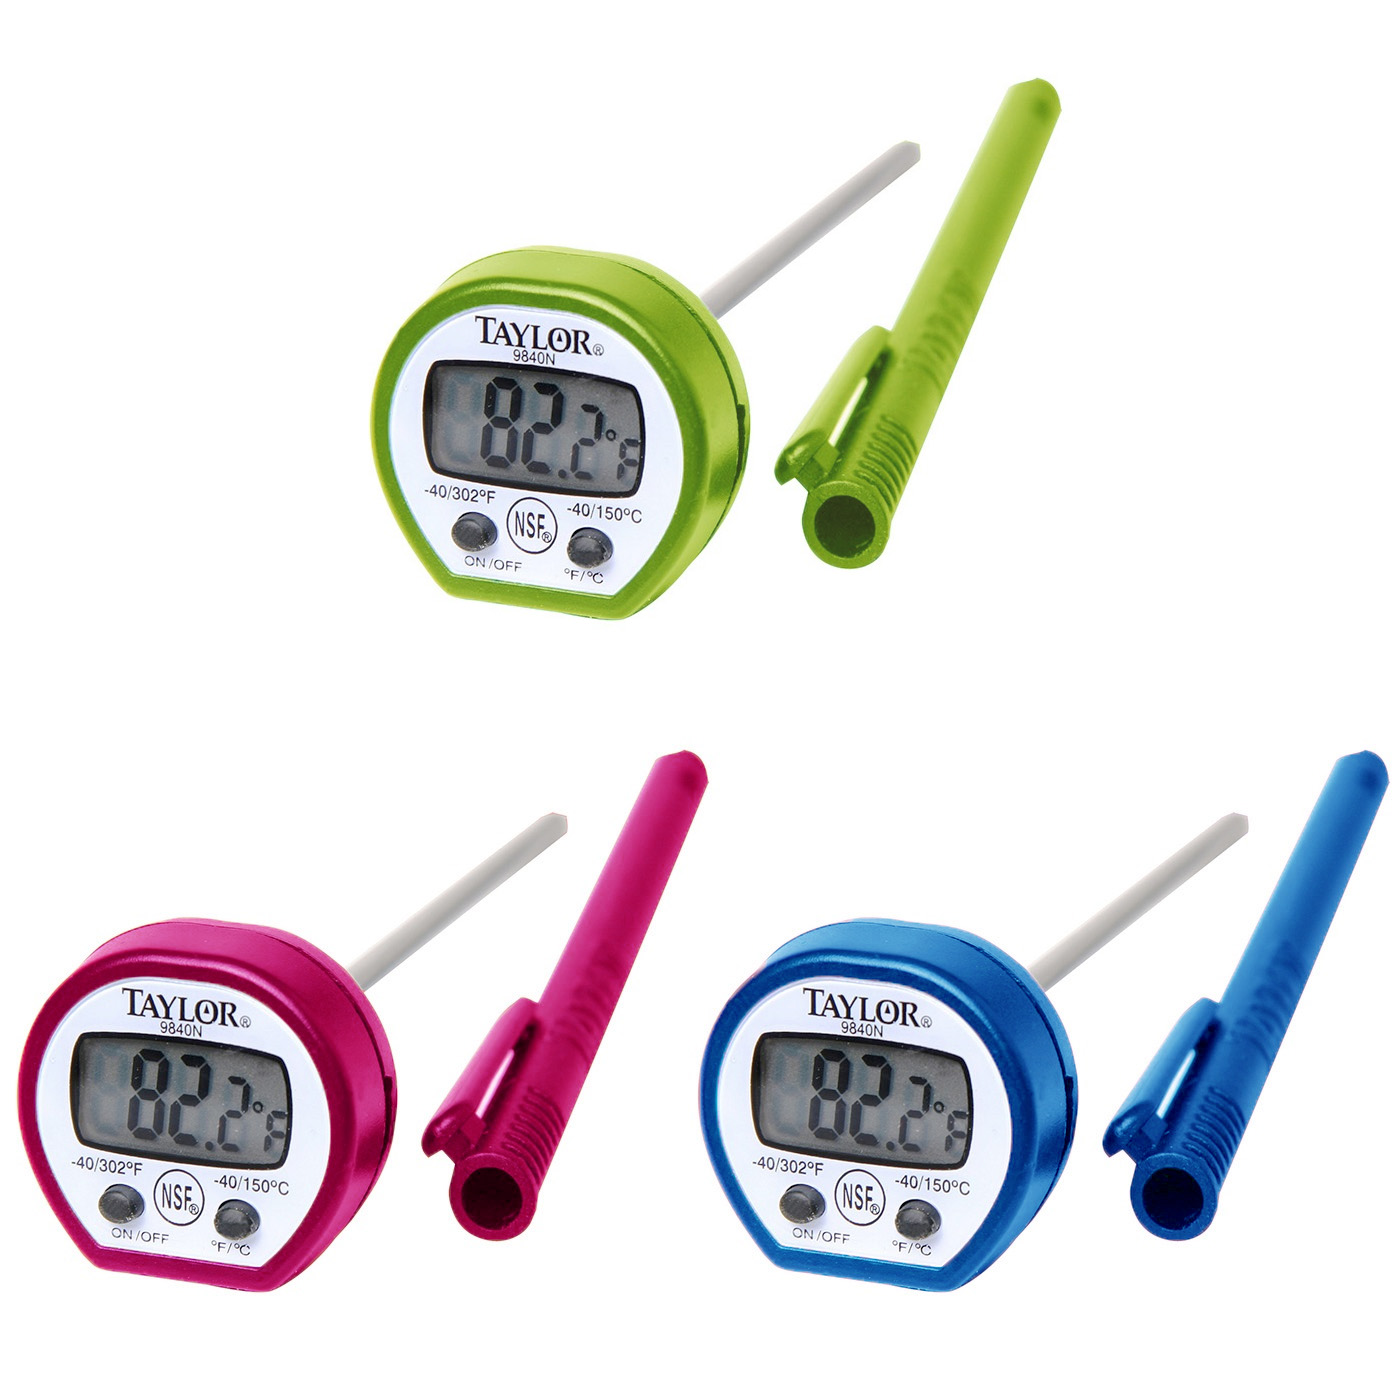 Taylor Classic Digital Instant Read Thermometer, Assorted Colors